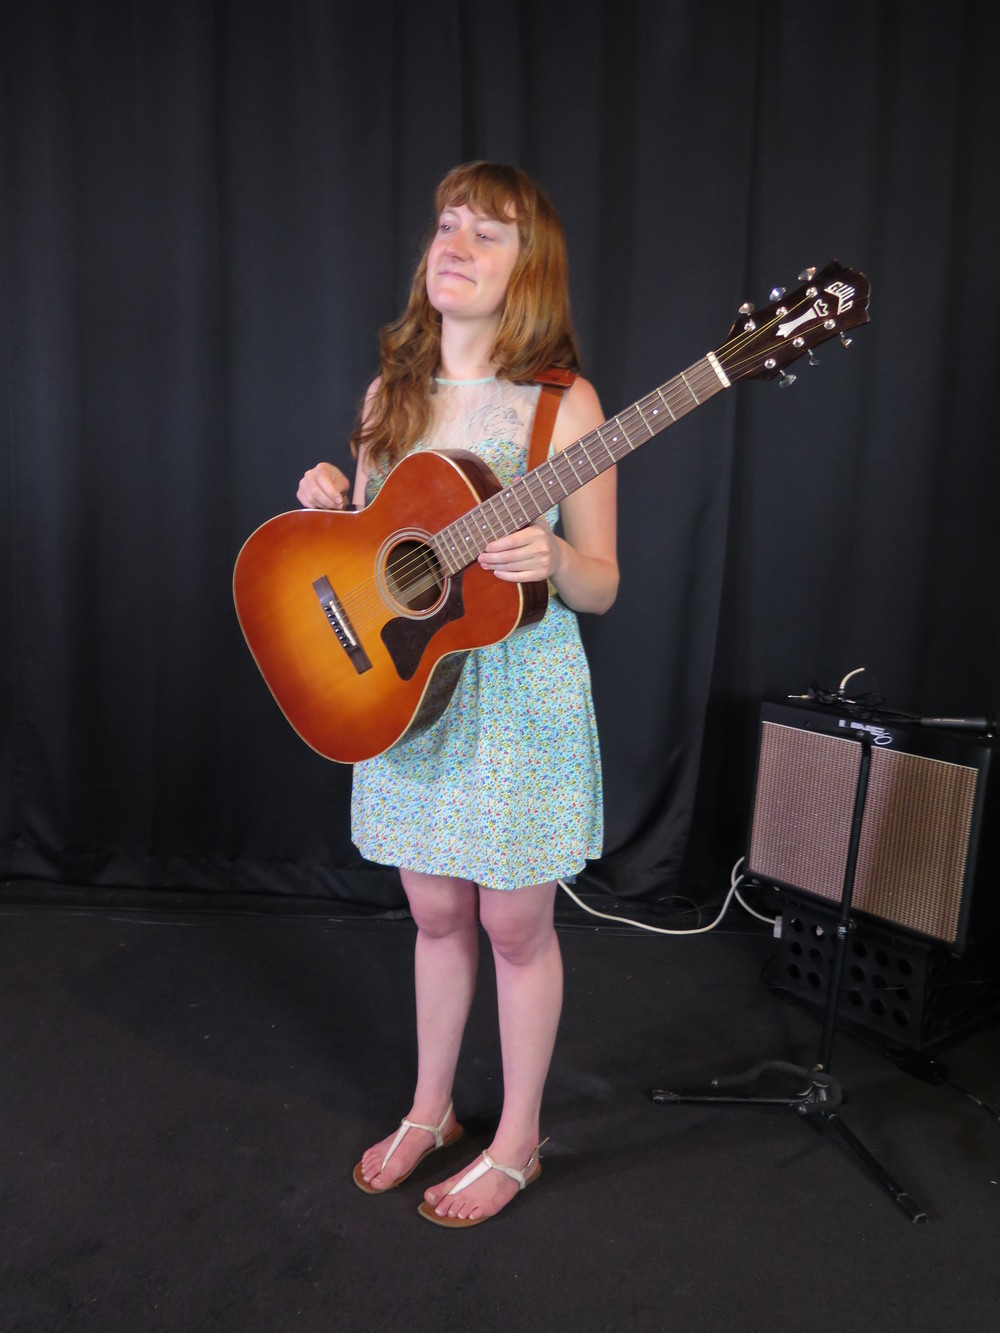 Amanda Anne Platt of The Honeycutters at Moonlight Mile studio for our film session to make the pitch video for our crowd funding campaign.